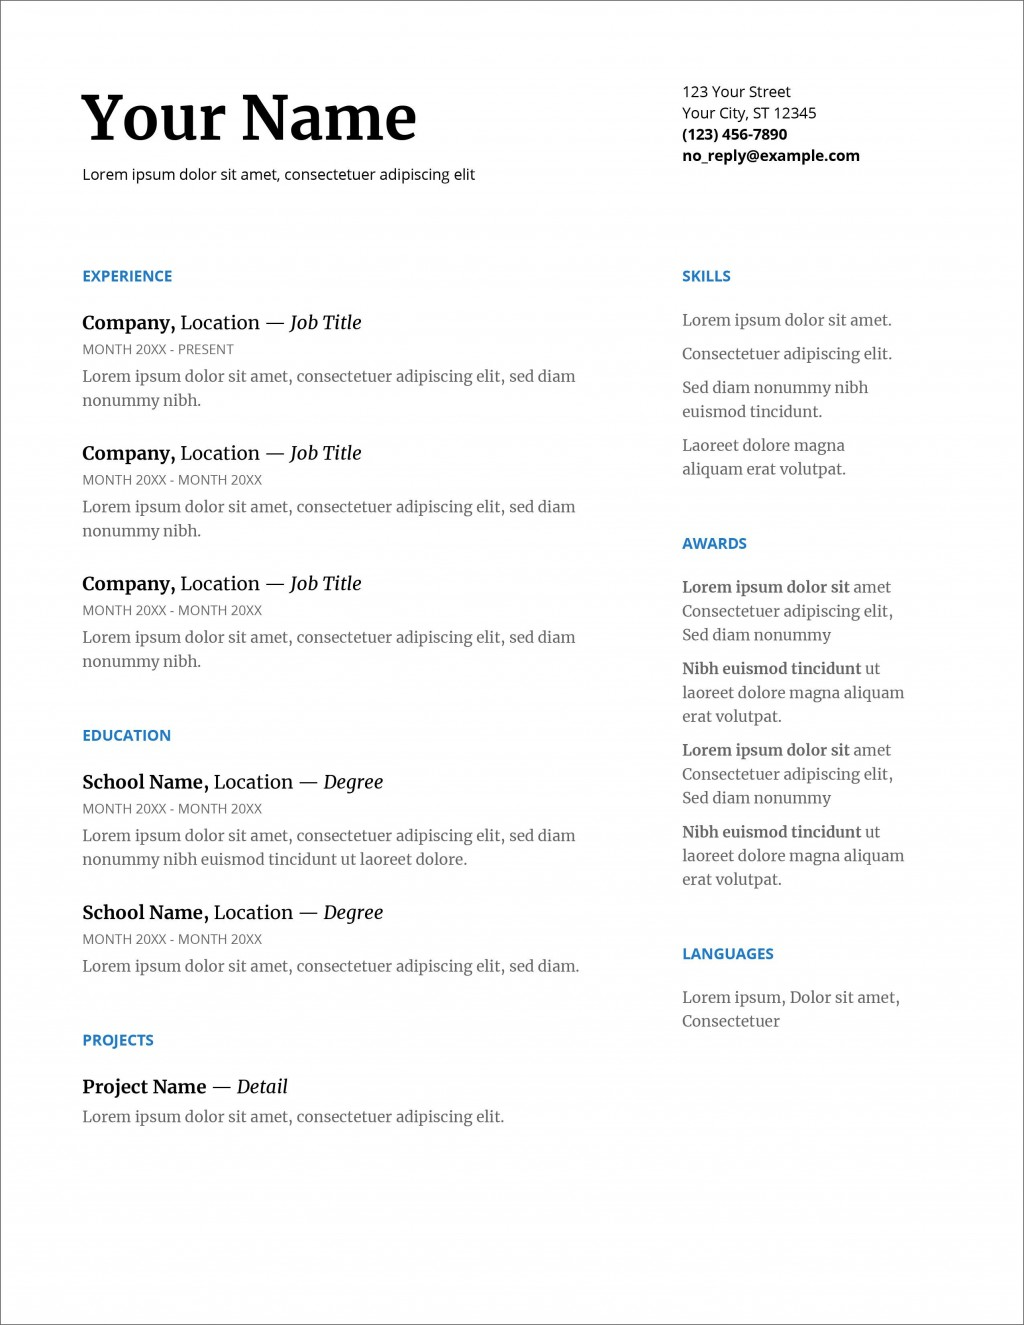 007 Fearsome Download Resume Template Word 2007 High Resolution Large